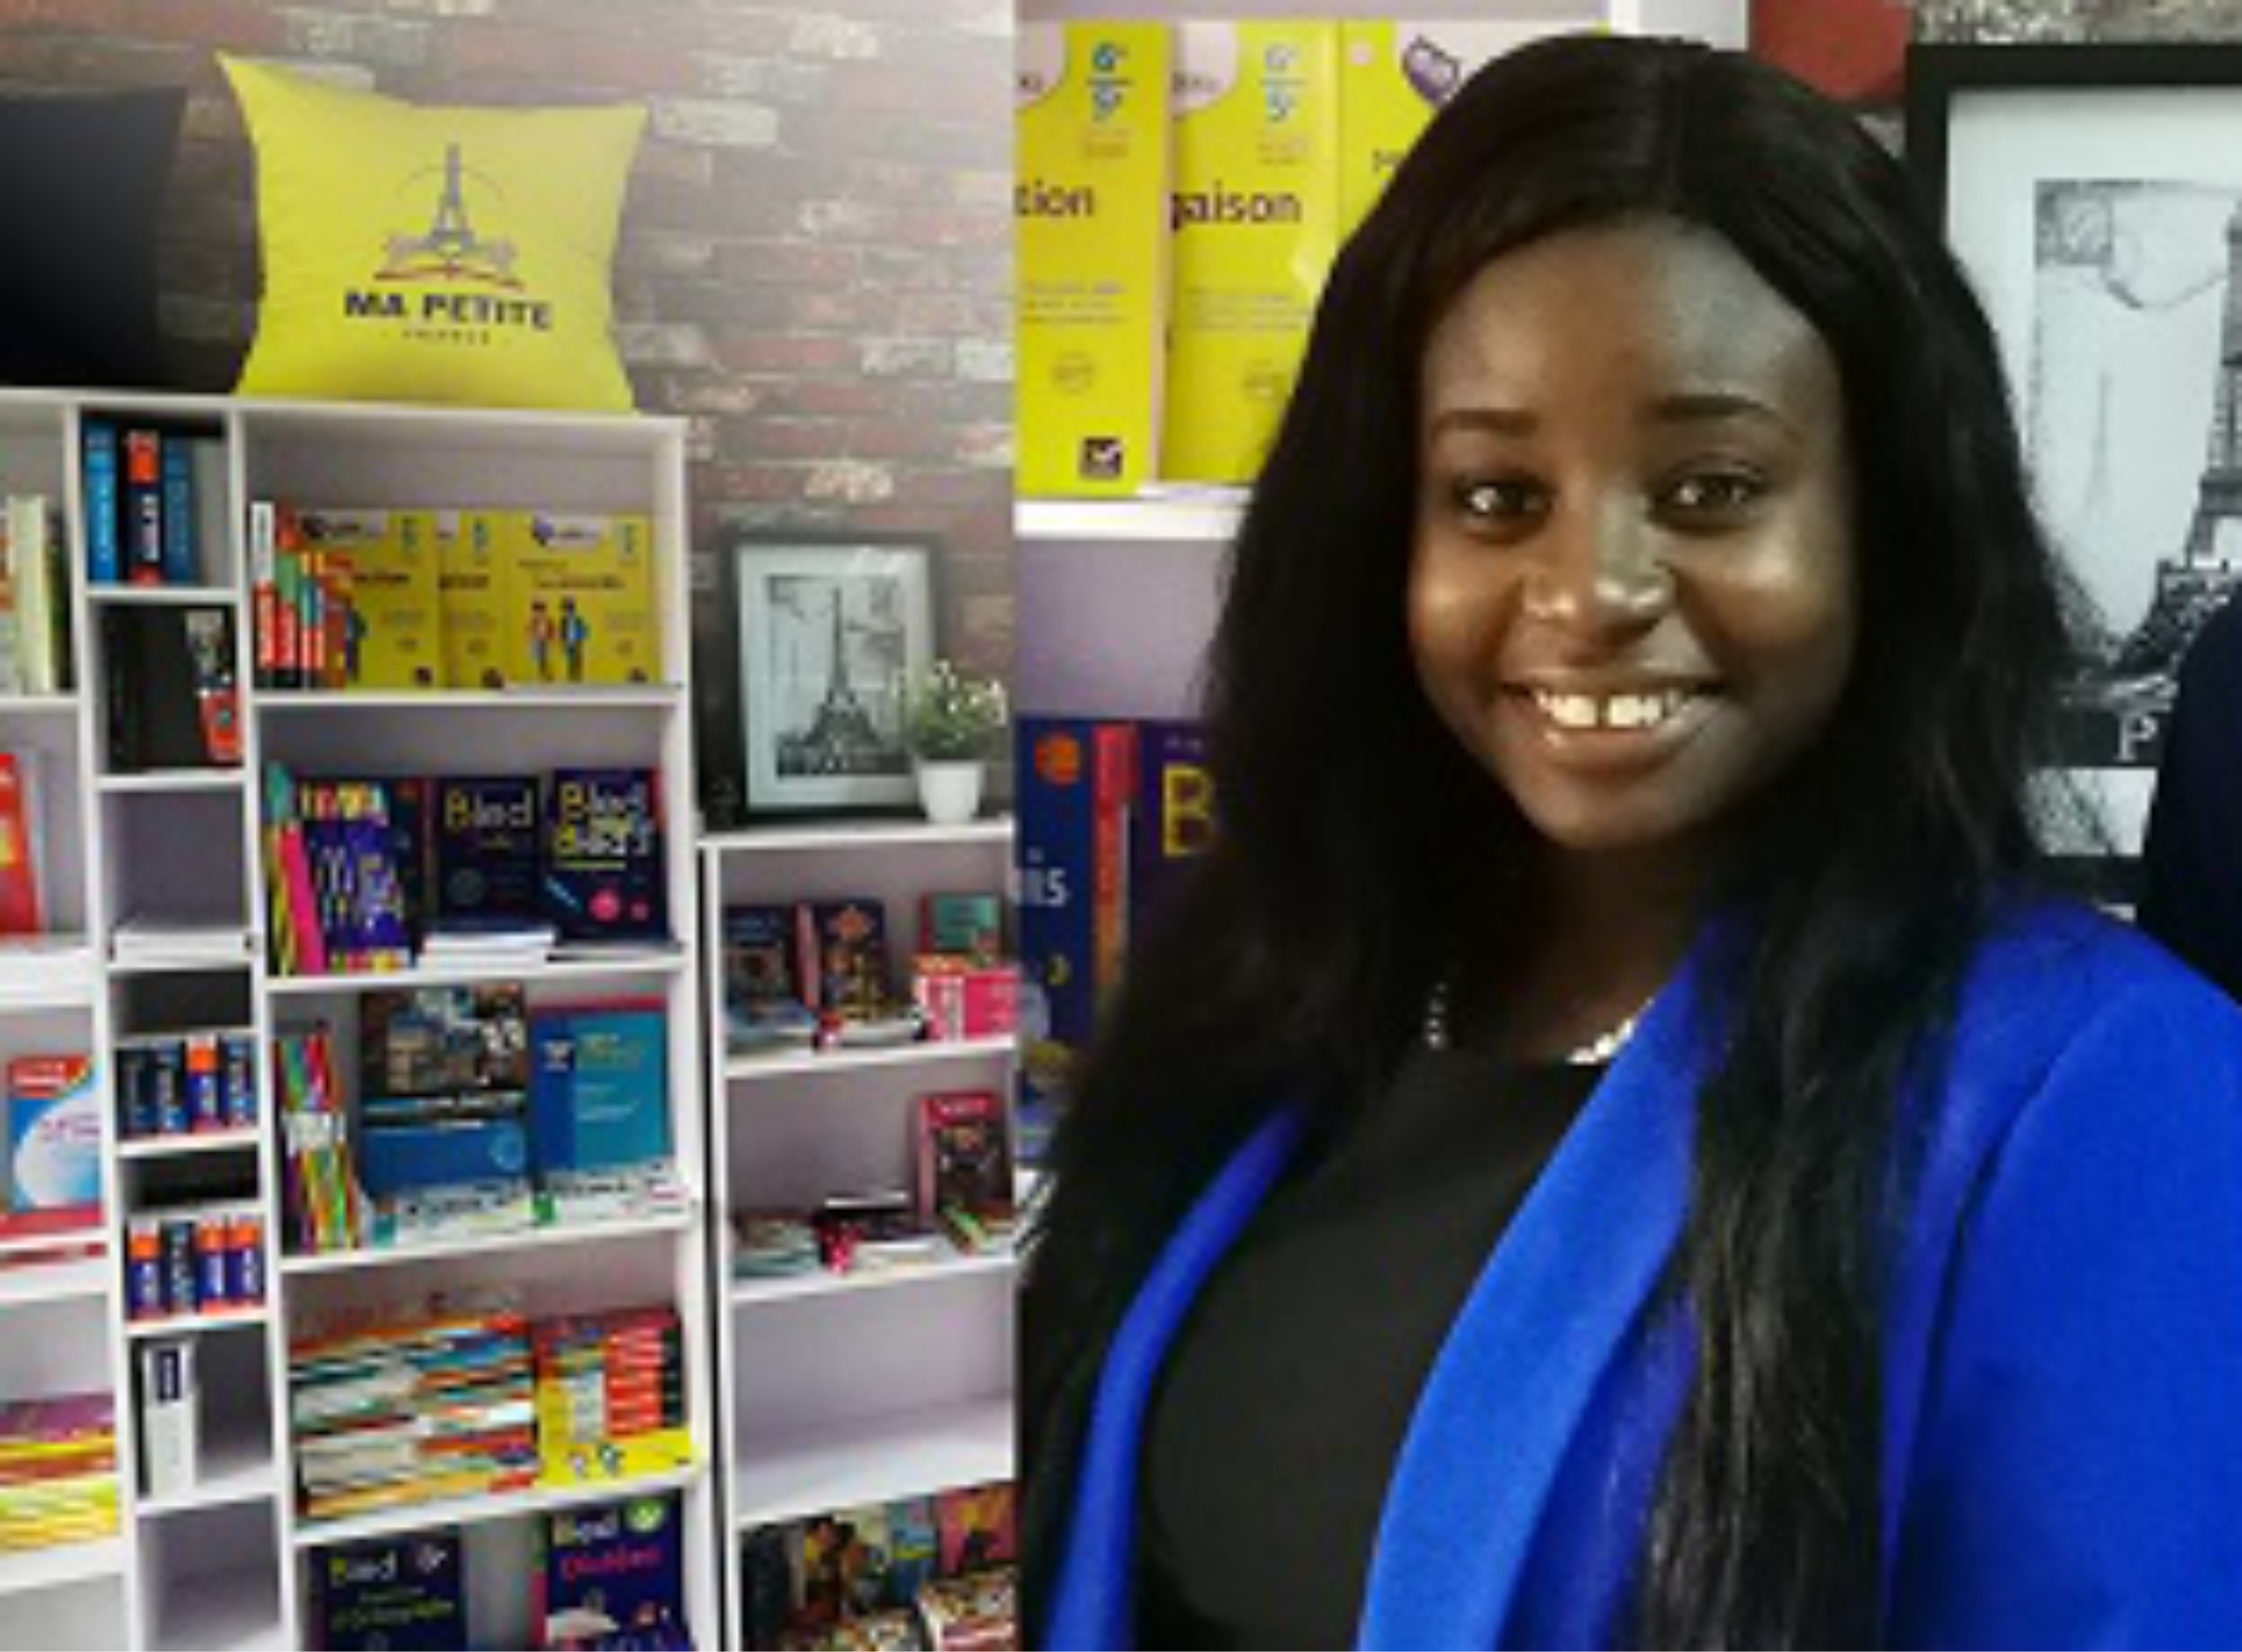 INTERVIEW: MISS TOSIN ADESINA, FOUNDER OF MA PETITE FRANCE